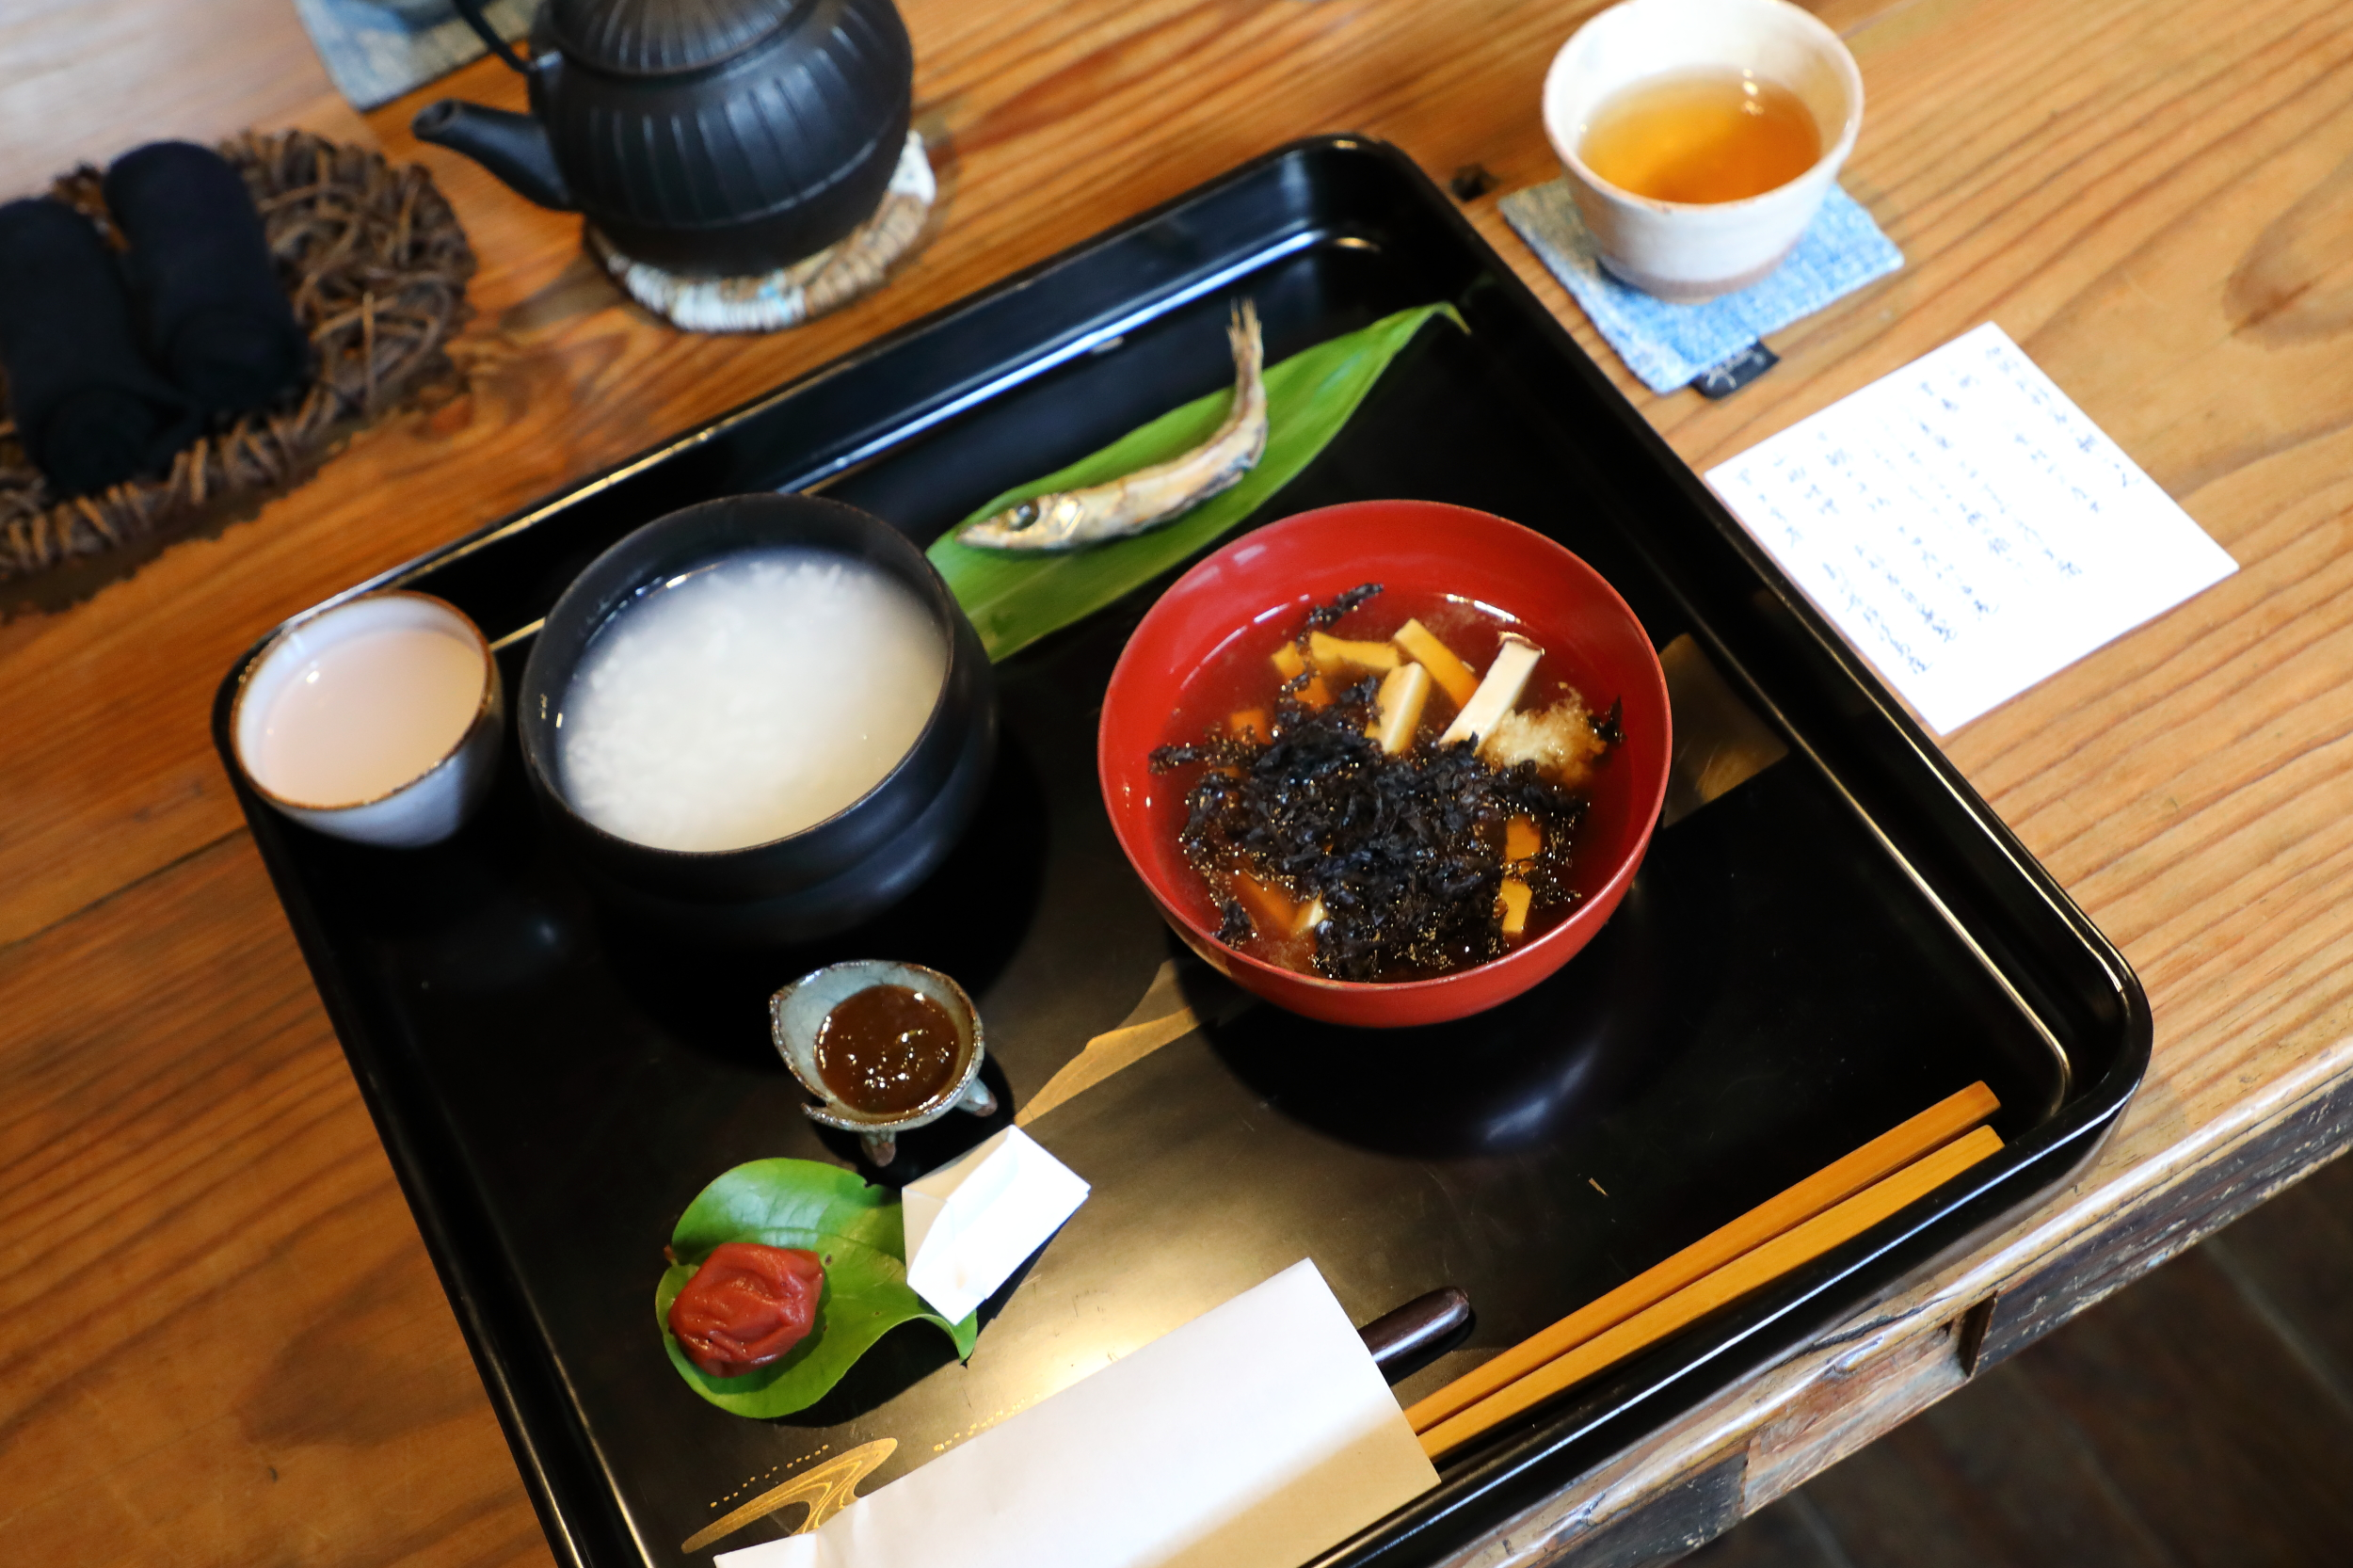 Breakfast in spring at Takyo Abeke includes  okayu  rice porridge, grilled river fish, and a local specialty of hardened tofu that is cut into strips and served like noodles in a thick and savory dashi soup.